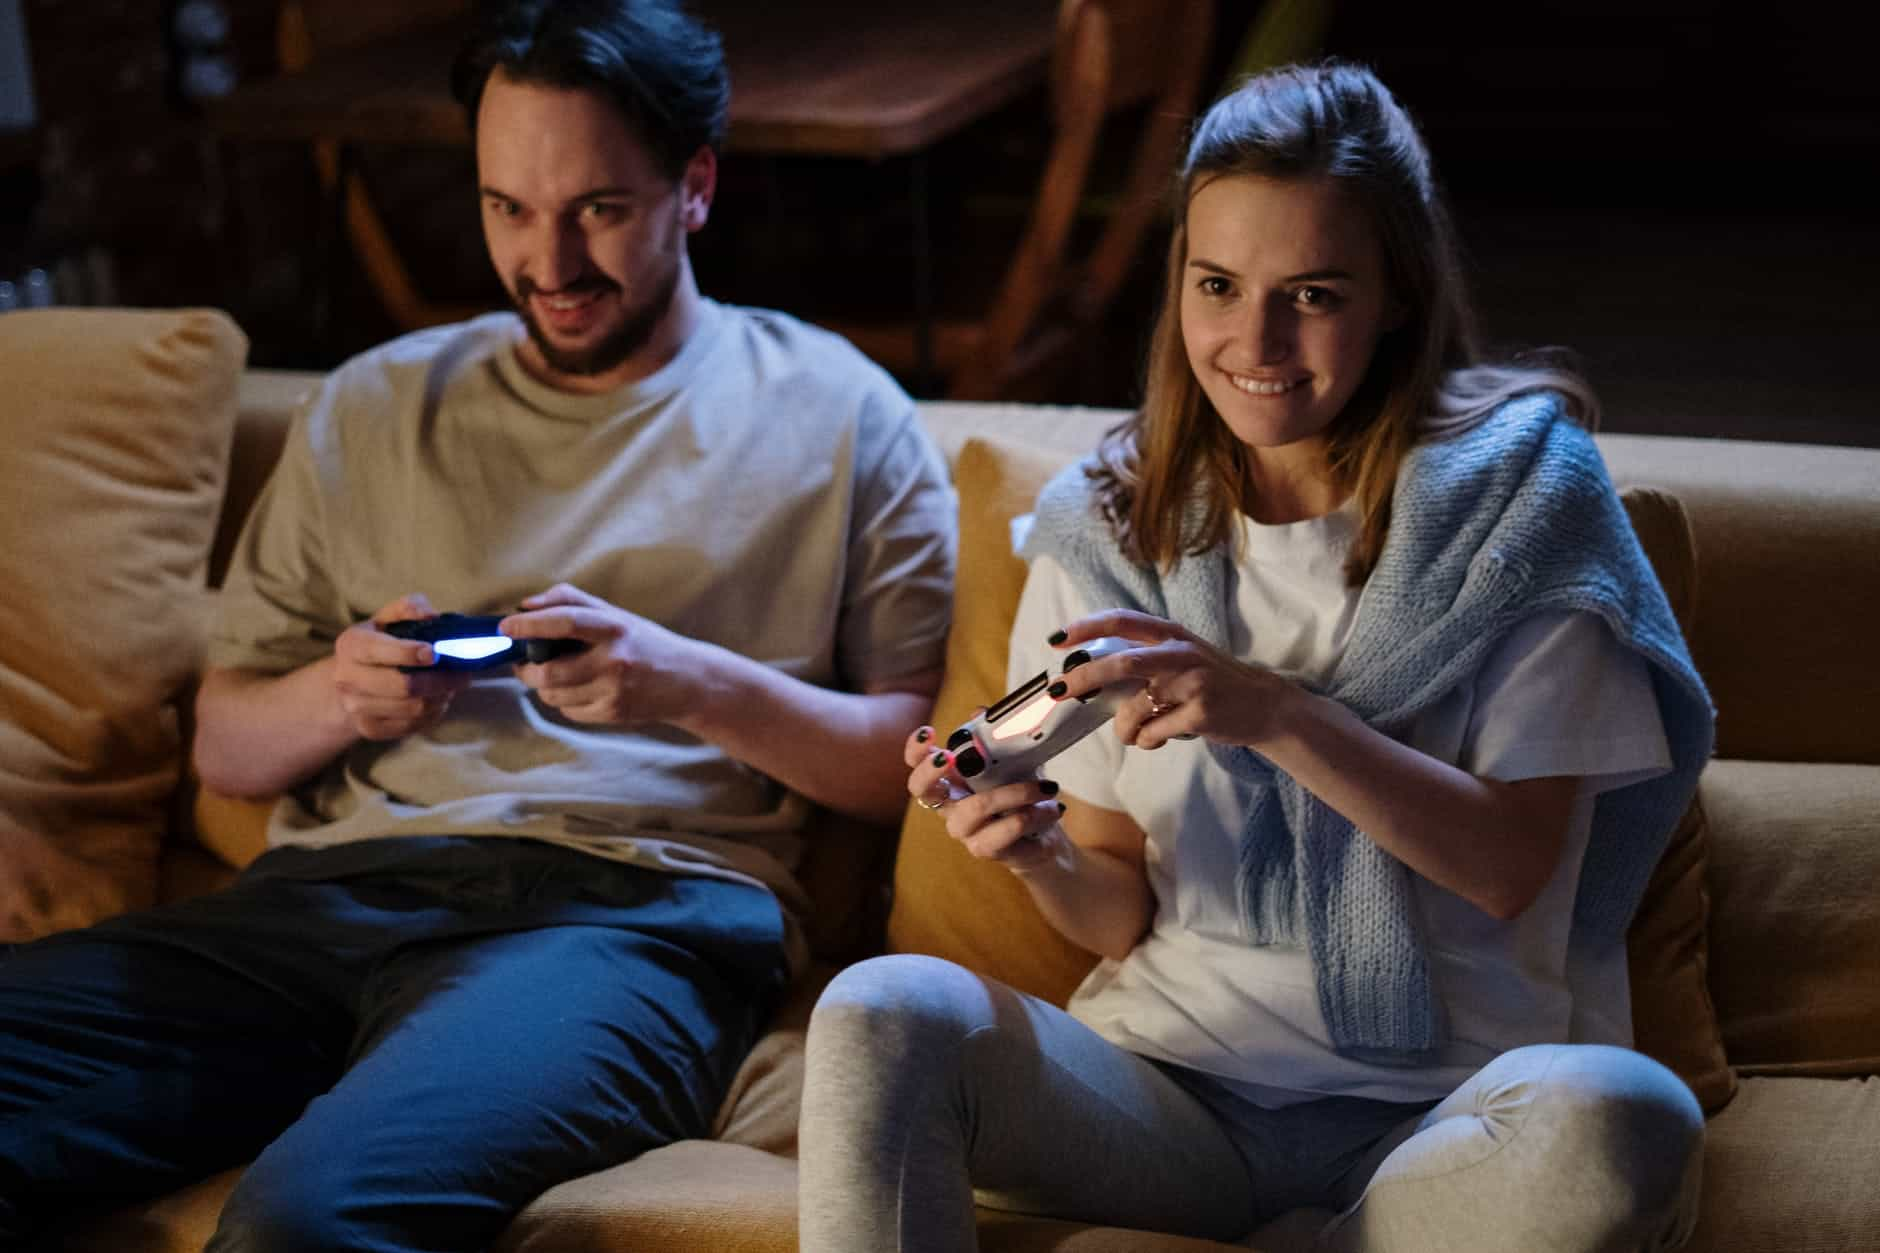 Four Incredible Advances in Gaming Technology